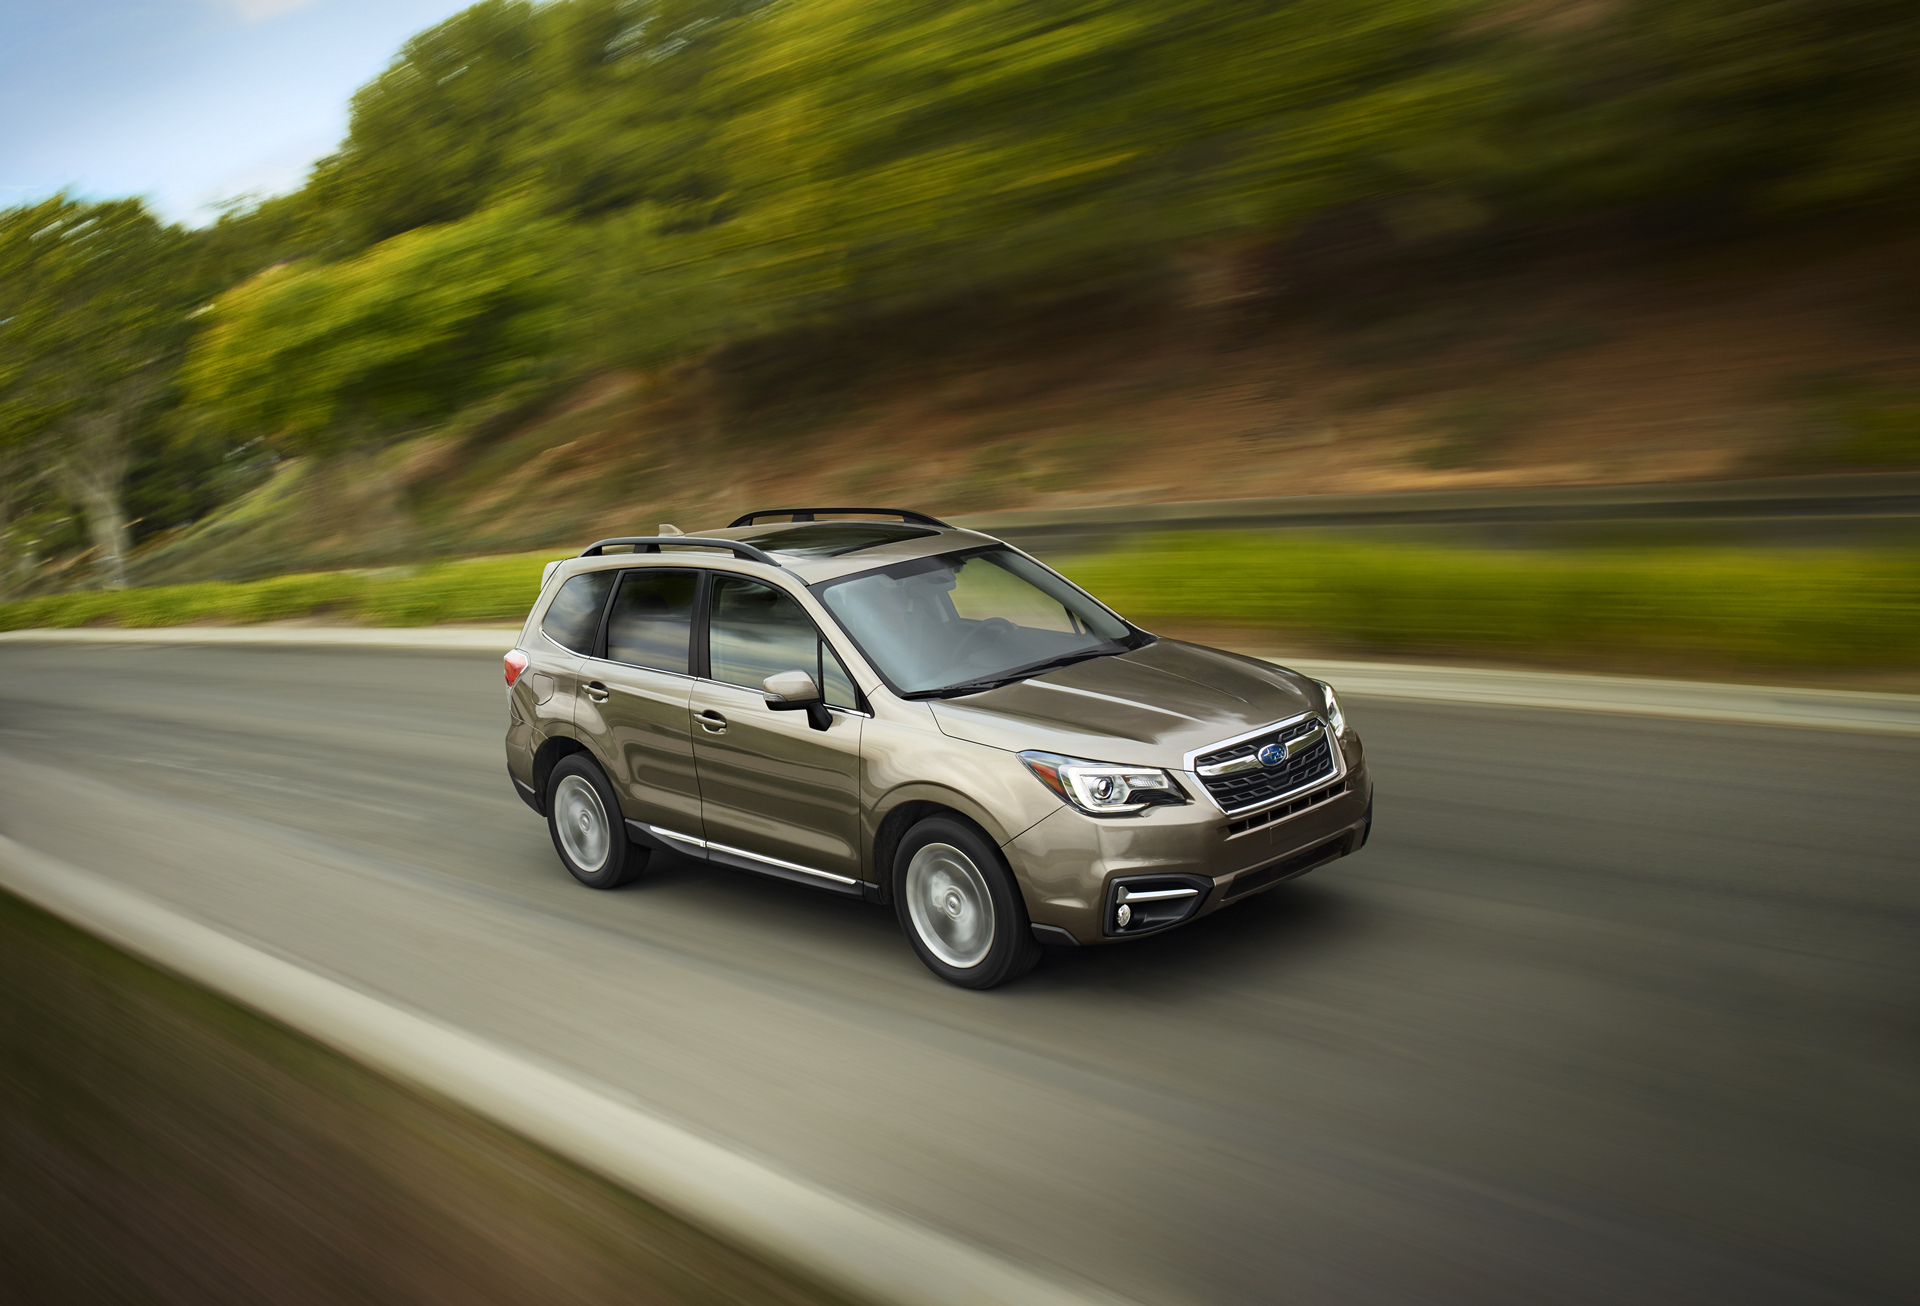 2017 Subaru Forester © Fuji Heavy Industries, Ltd.